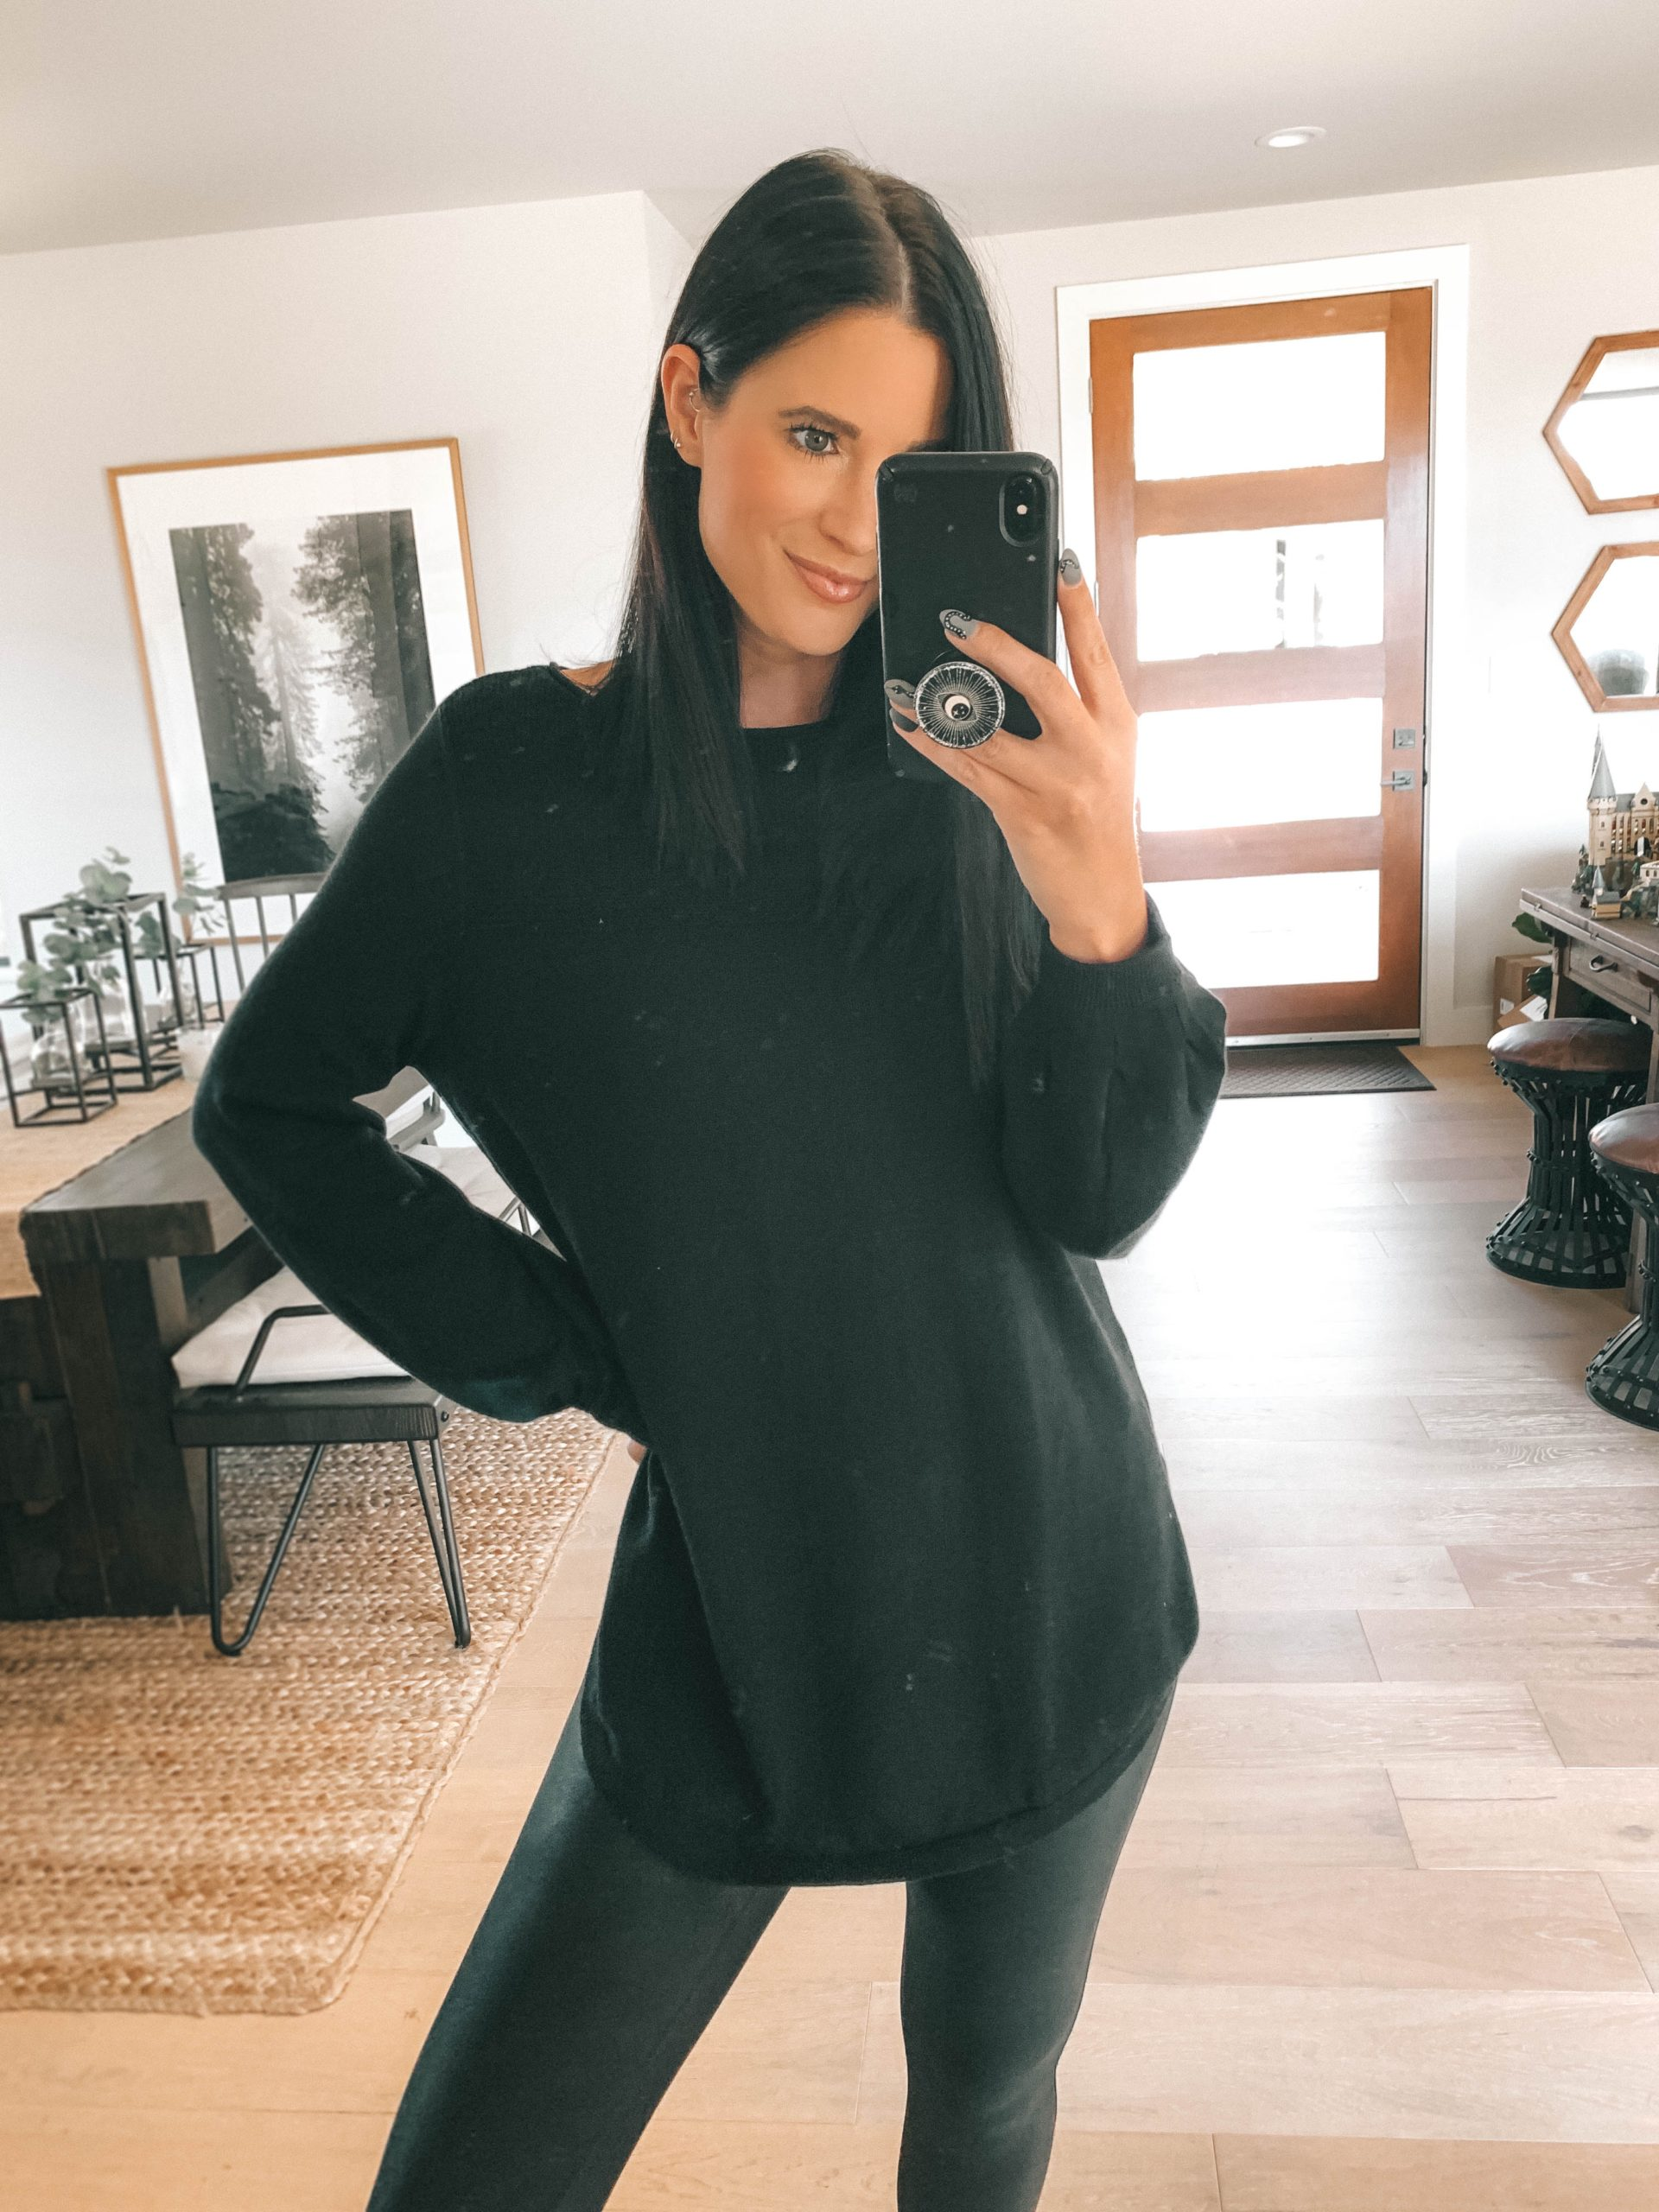 Nordstrom Anniversary Sale by popular Austin fashion blog, Dressed to Kill: image of a woman wearing Nordstrom Faux Leather Leggings SPANX, Nordstrom UltraBoost Running Shoe ADIDAS, and Nordstrom Bishop Sleeve Sweater CASLON.